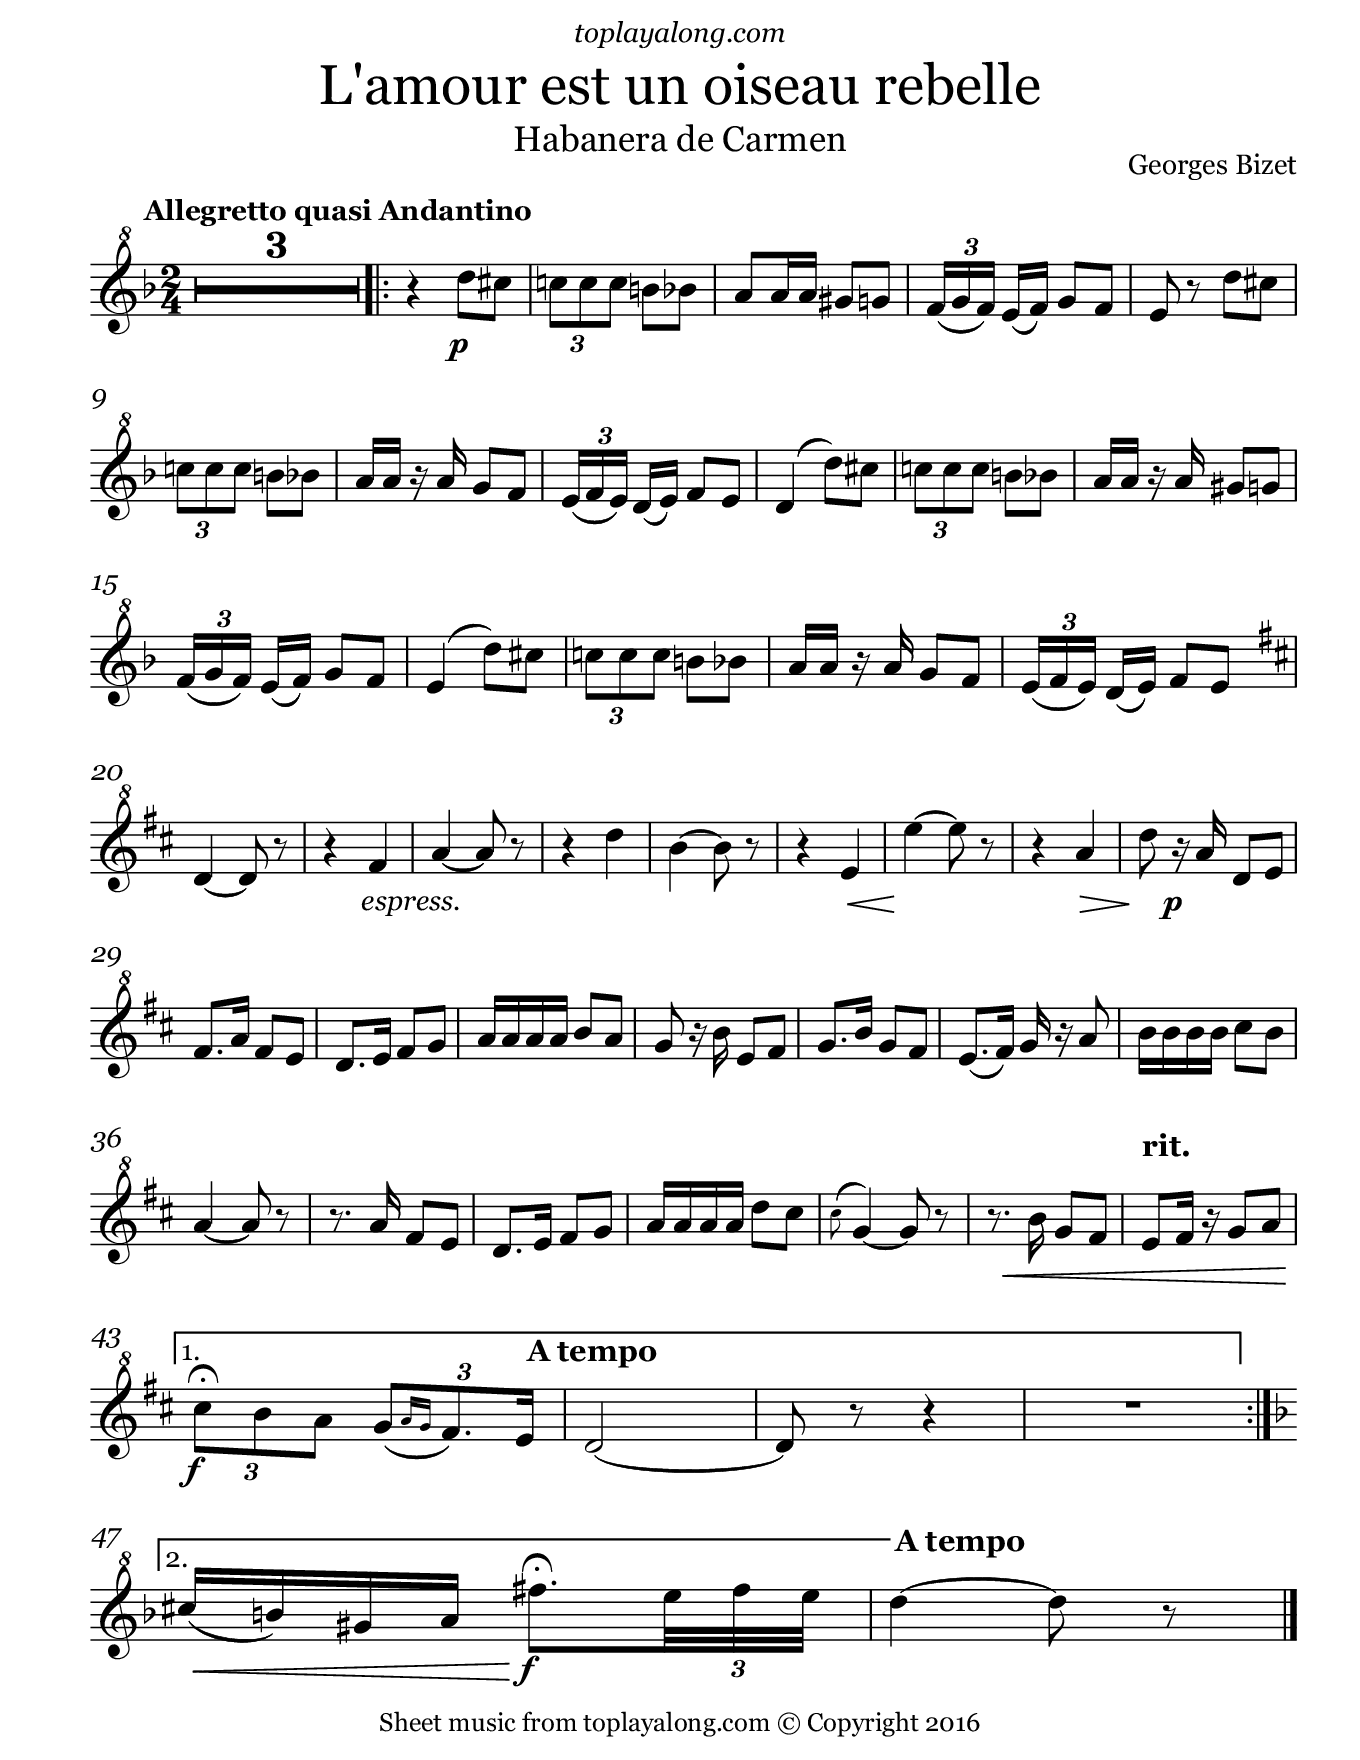 Habanera from Carmen by Bizet. Sheet music for Recorder, page 1.